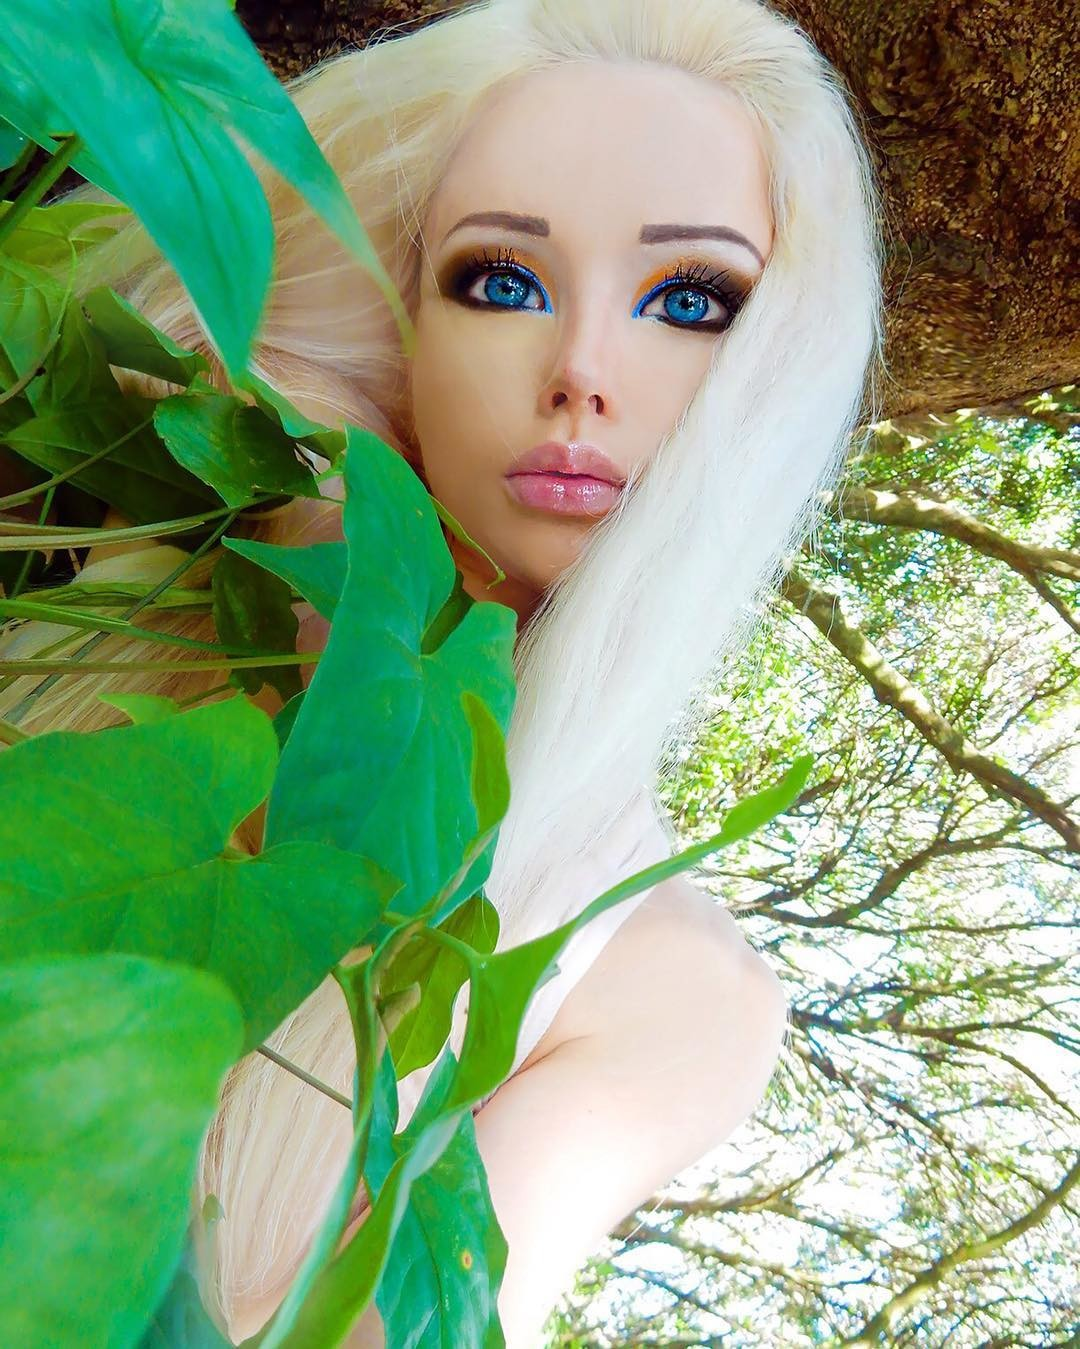 valeria lukyanova without makeup - 800×999